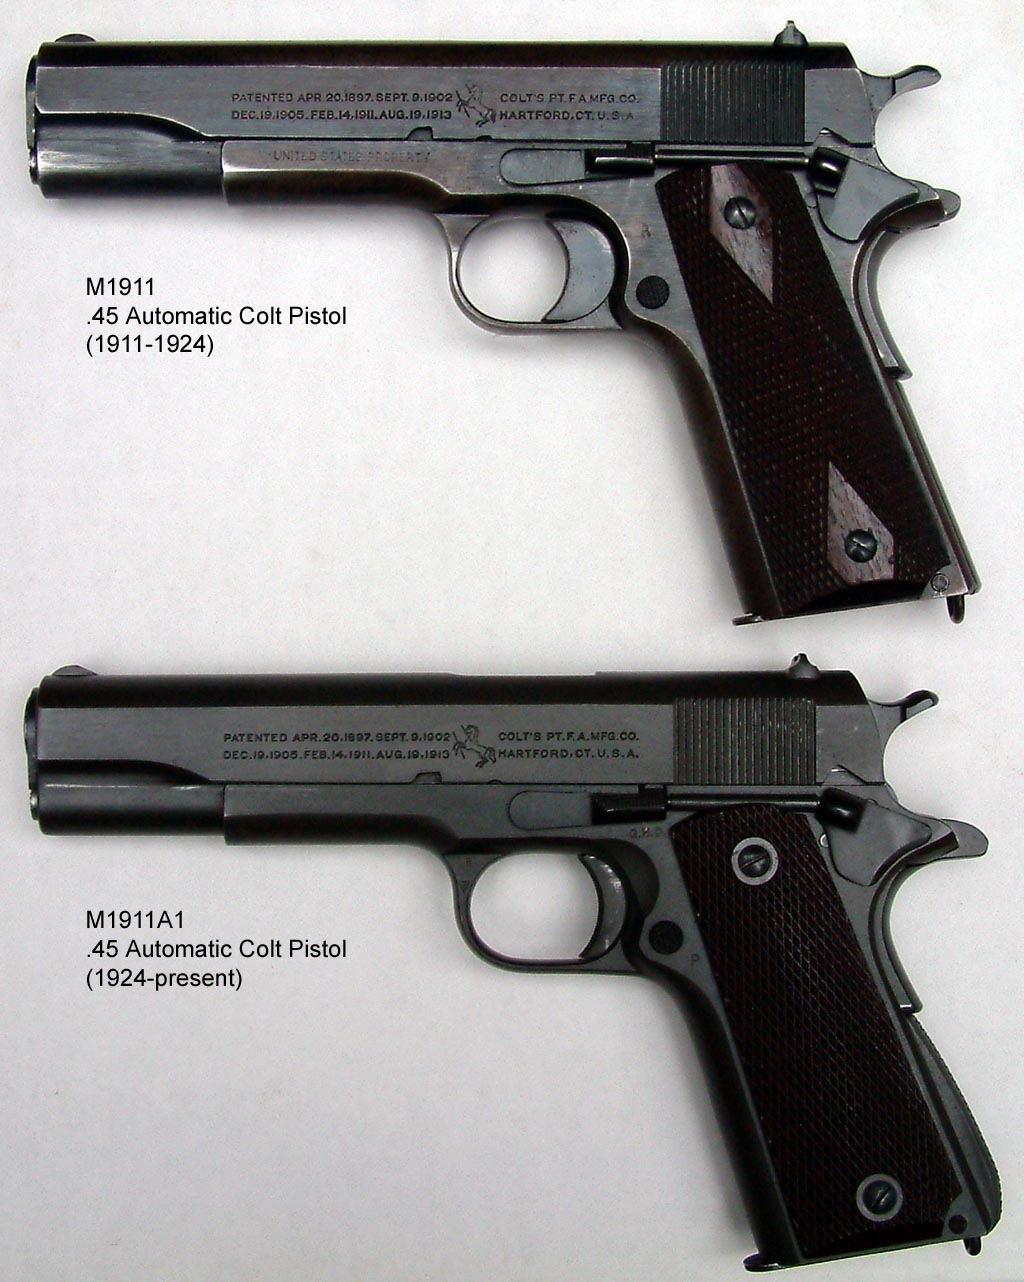 M1911 pistol | Military Wiki | FANDOM powered by Wikia on